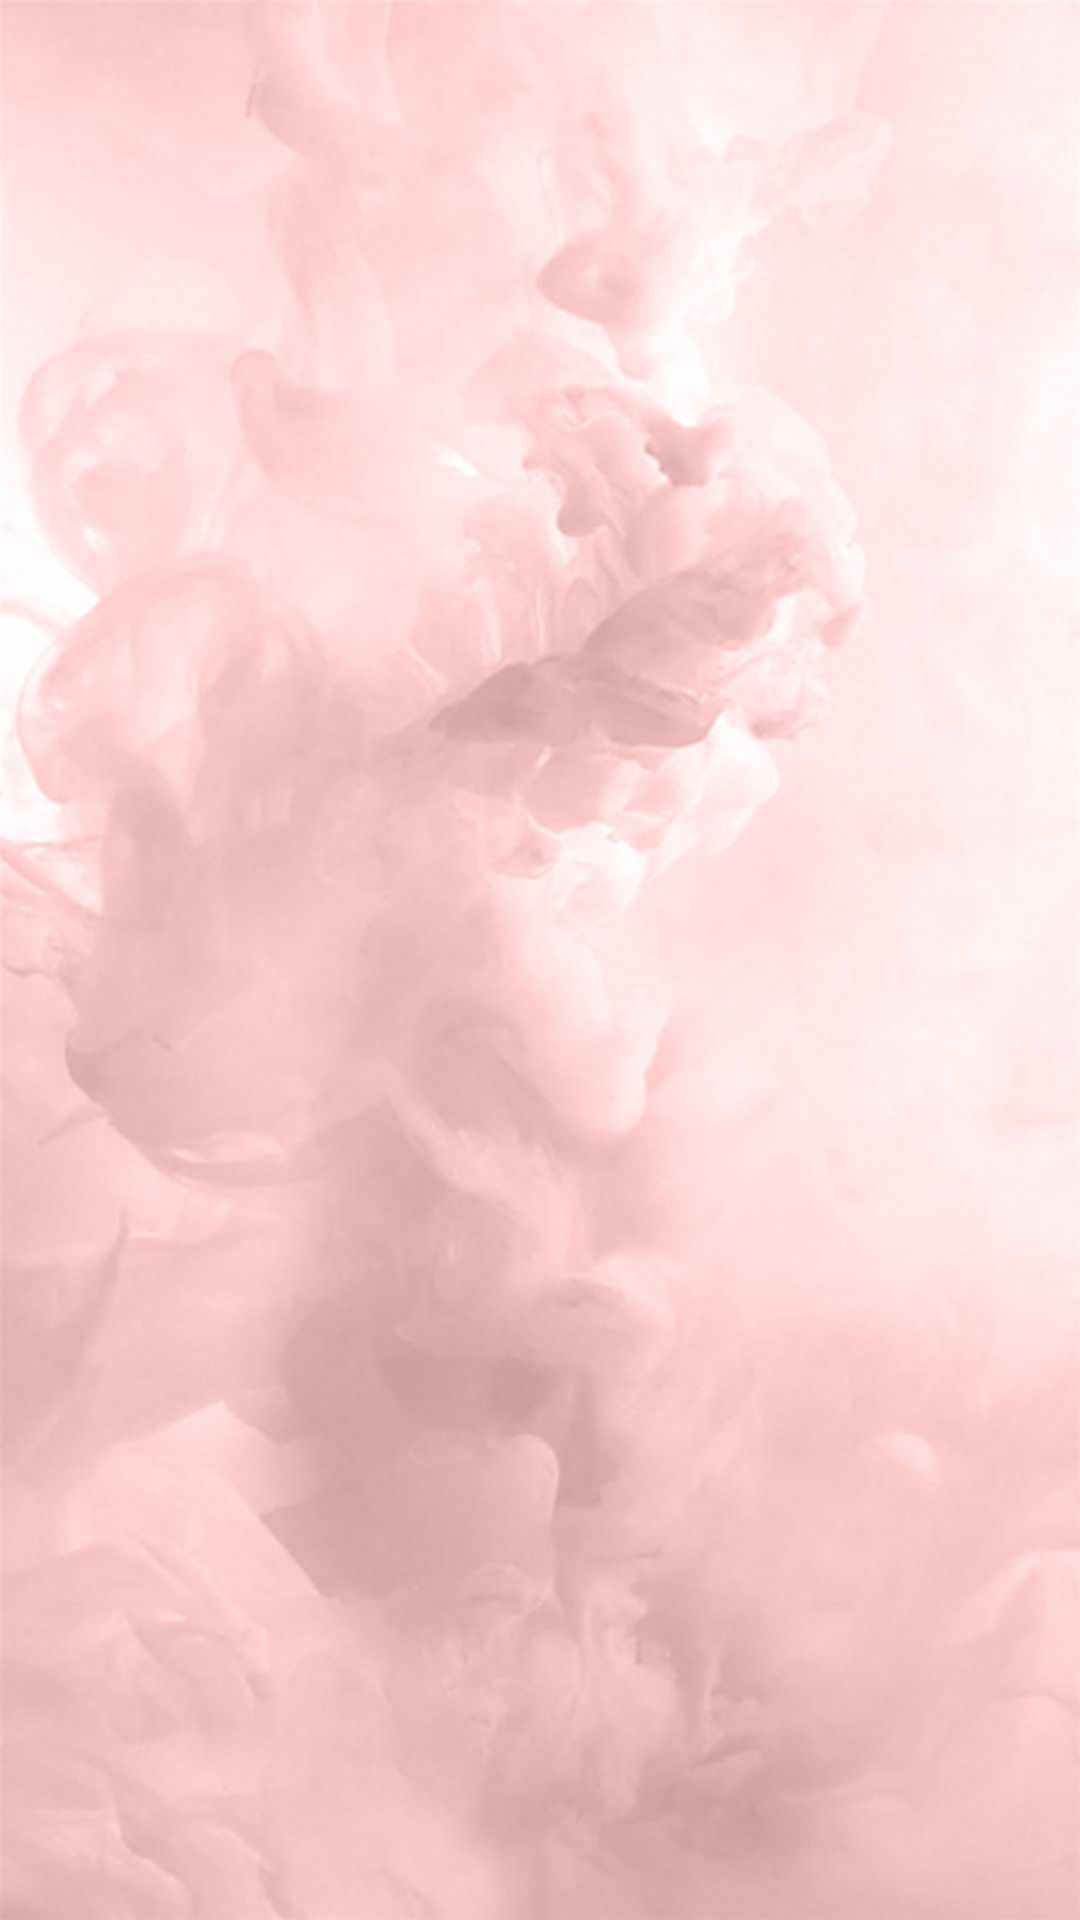 Must see Wallpaper Marble Cotton Candy - a870b63a2ce671c4e14ee45dde450e60  Trends_92523.jpg